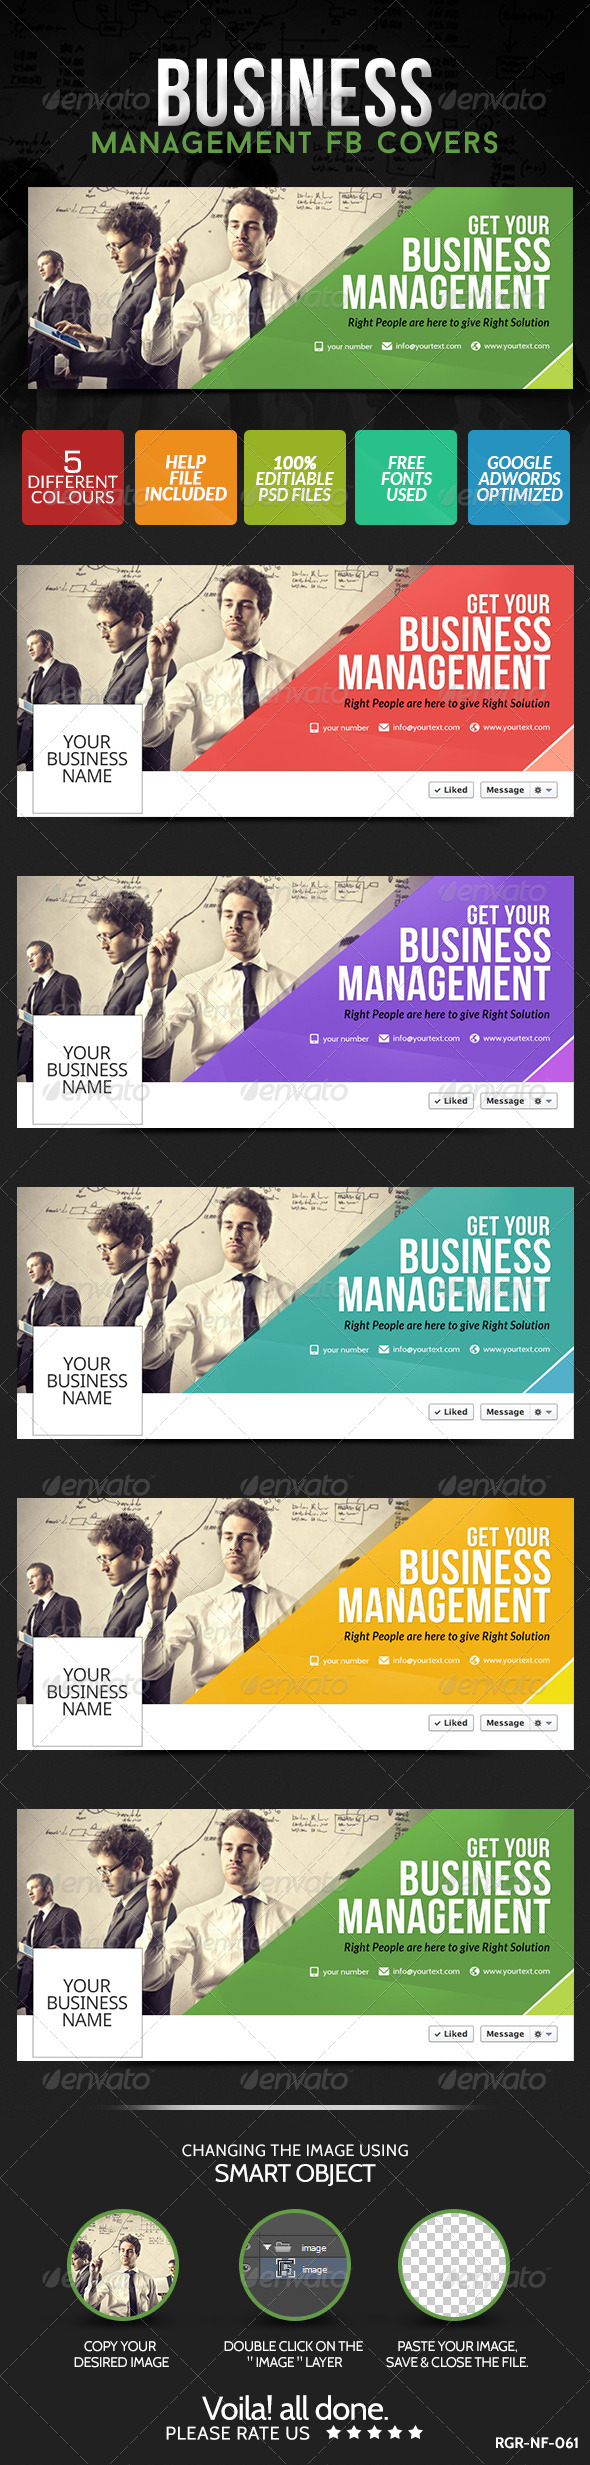 GraphicRiver Business Facebook Covers 5 Colors 8631794